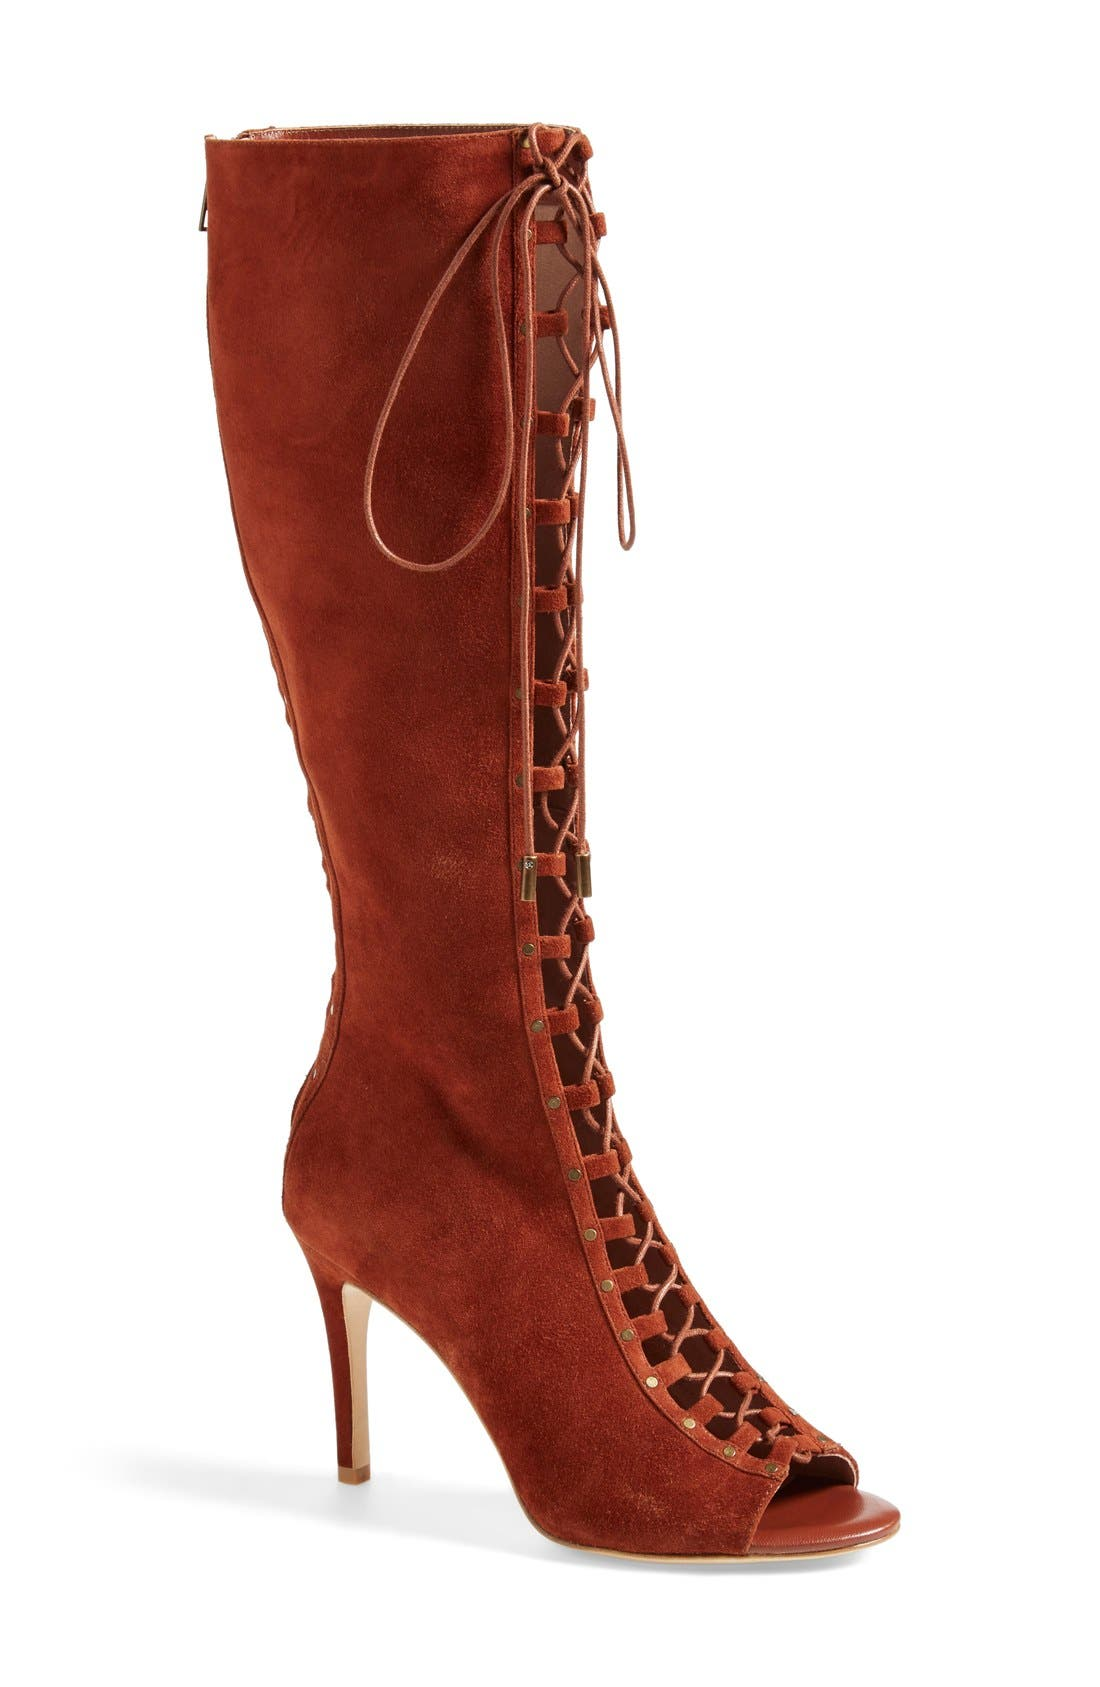 Alternate Image 1 Selected - Joie 'Aubrey' Lace-Up Tall Boot (Women)